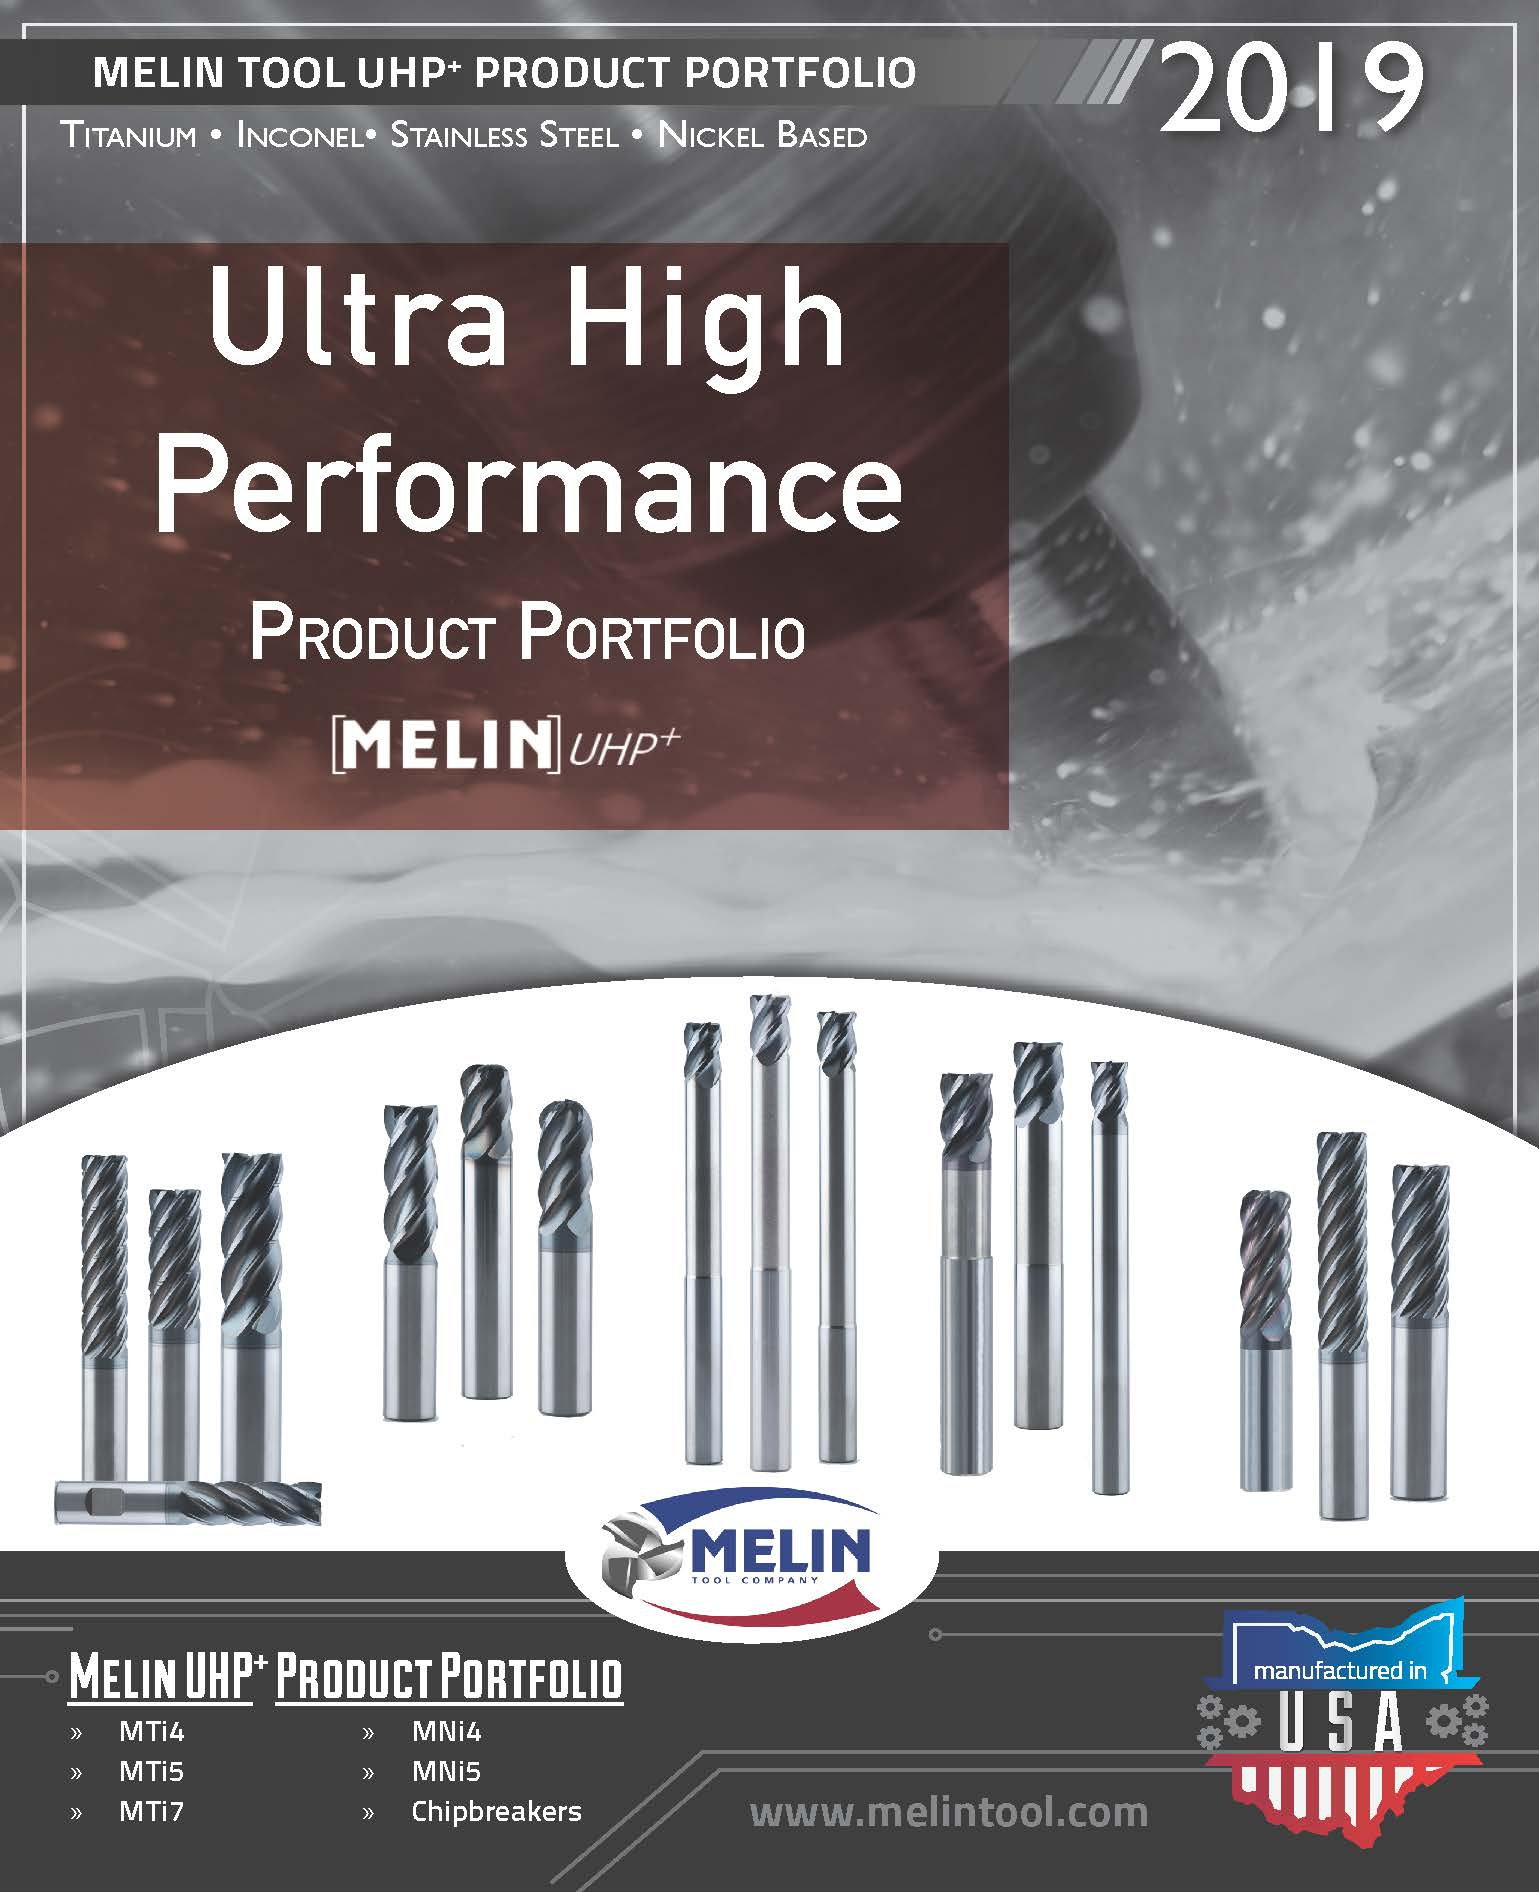 Melin Ultra High Performance Product Portfolio Brochure